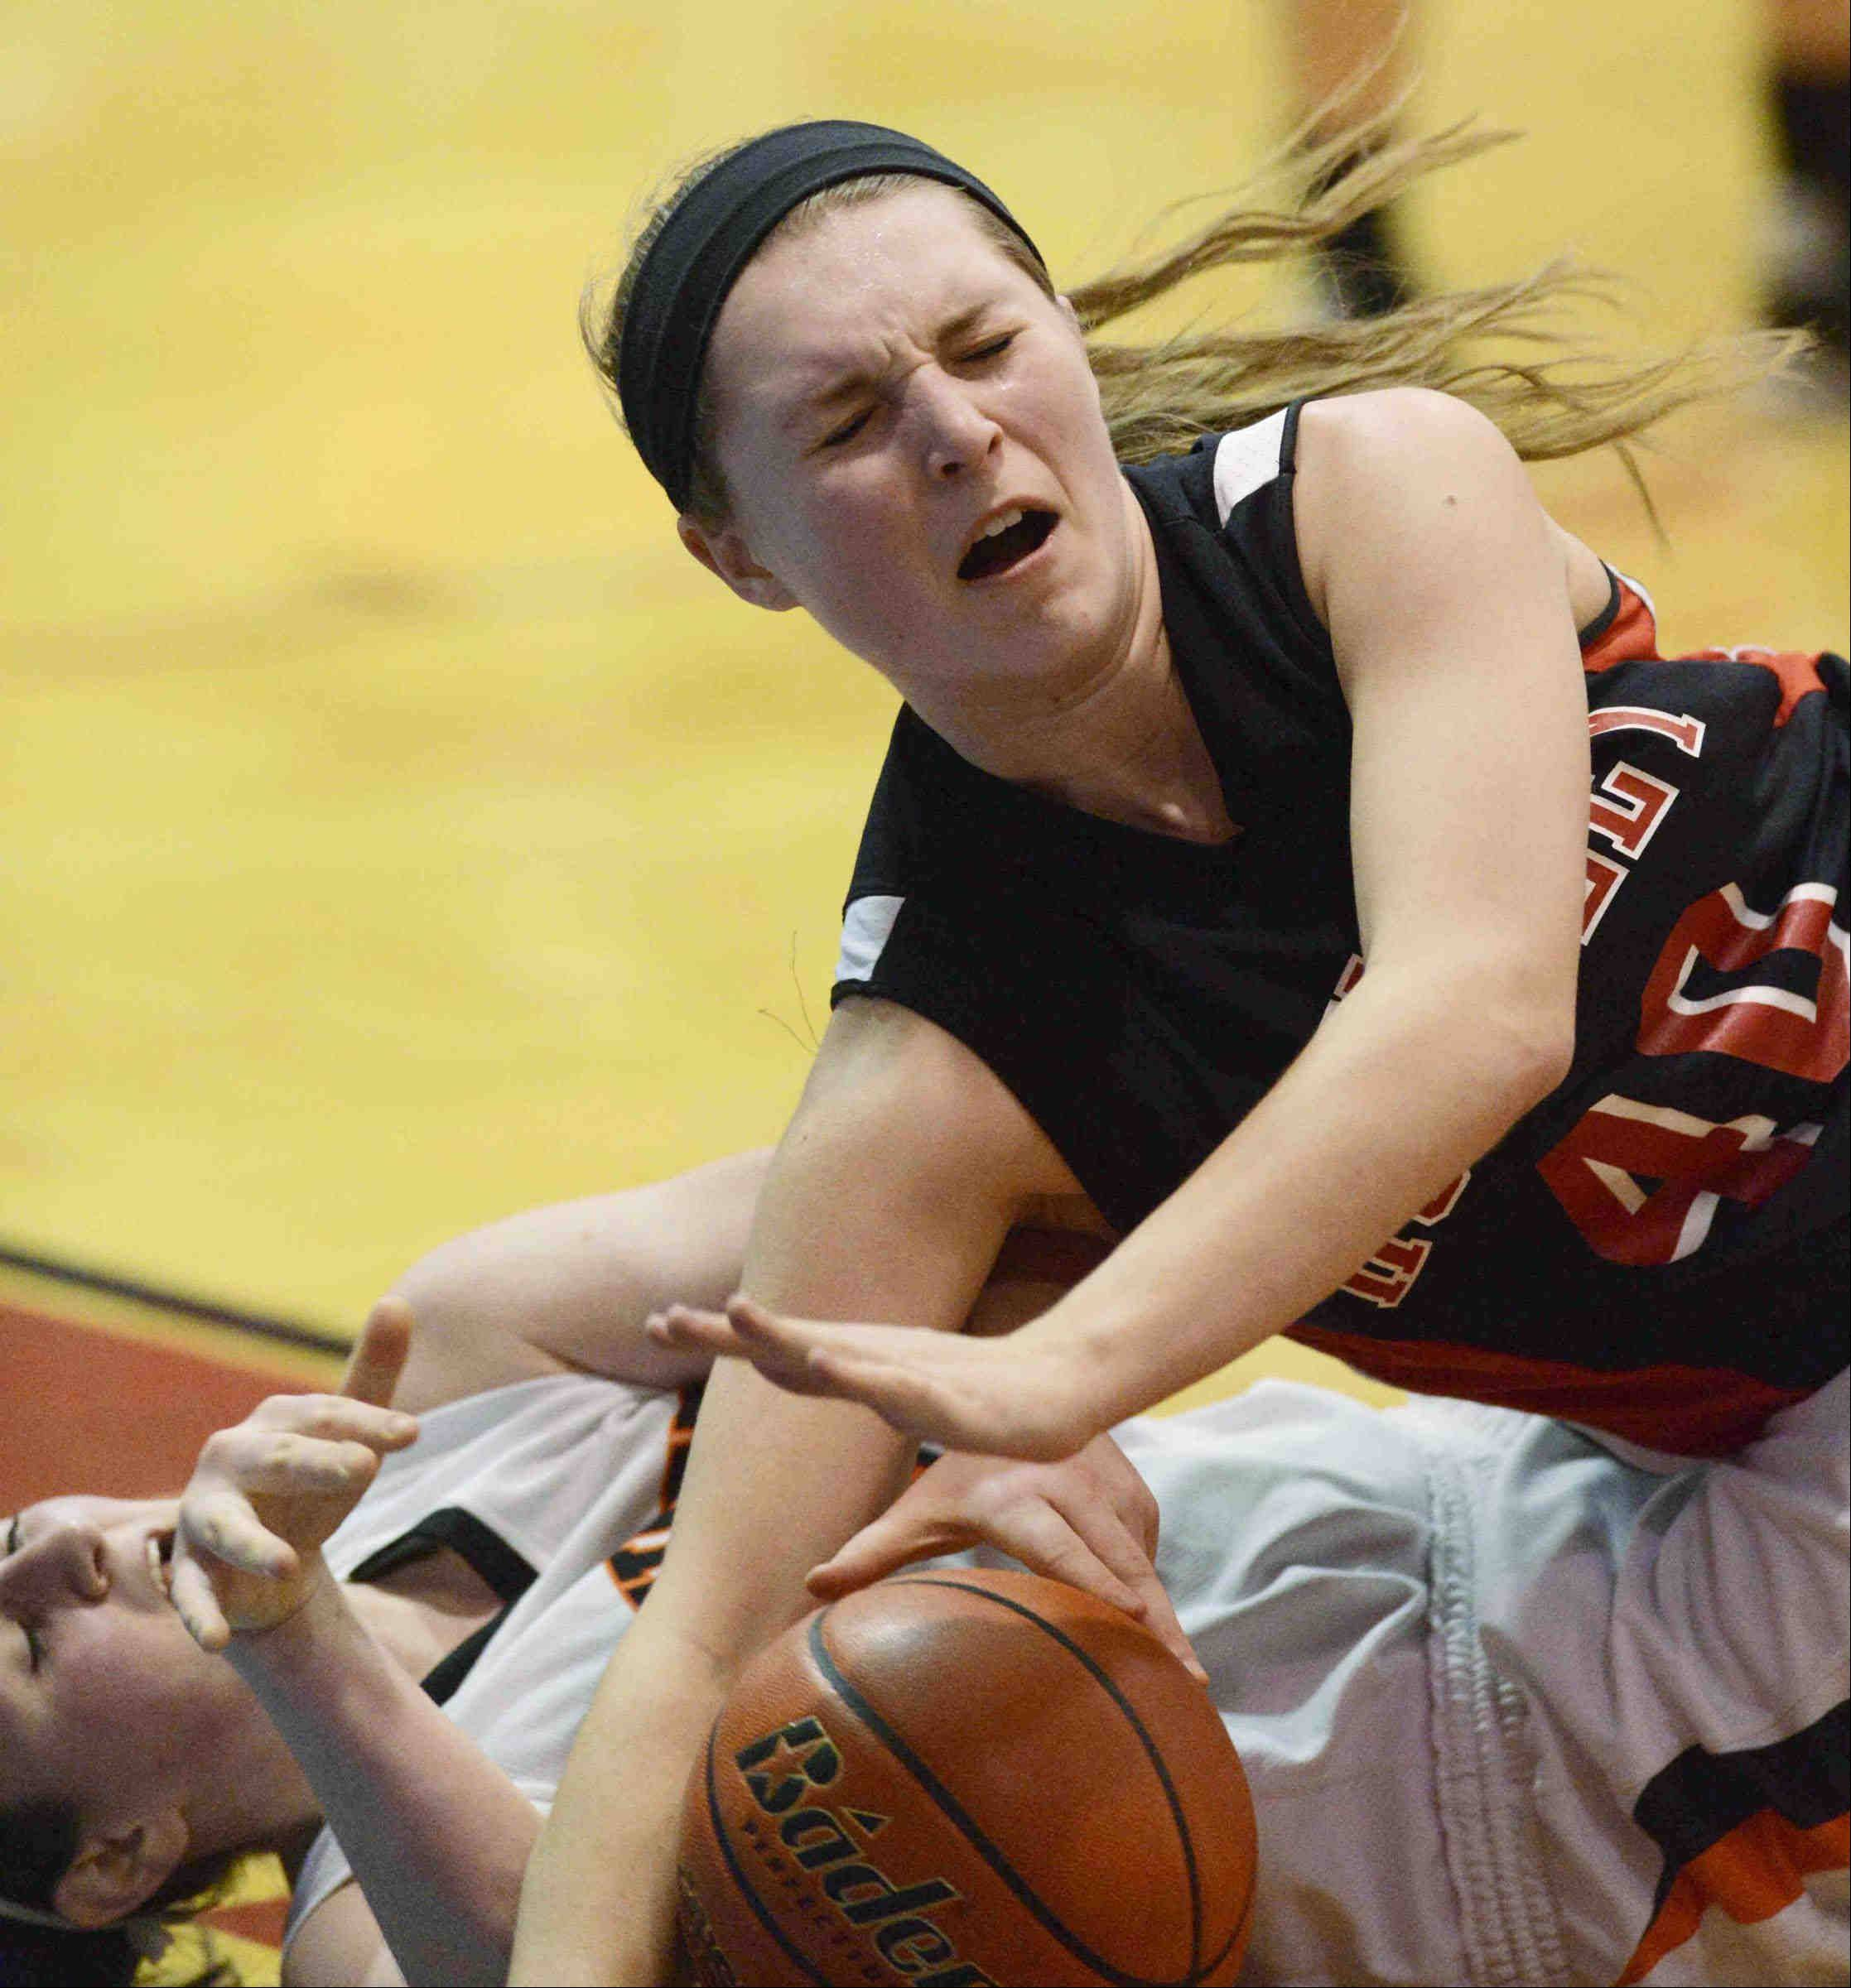 Images from the Wheaton Warrenville South vs. Huntley girls supersectional basketball game Monday, February 25, 2013 in Carpentersville.